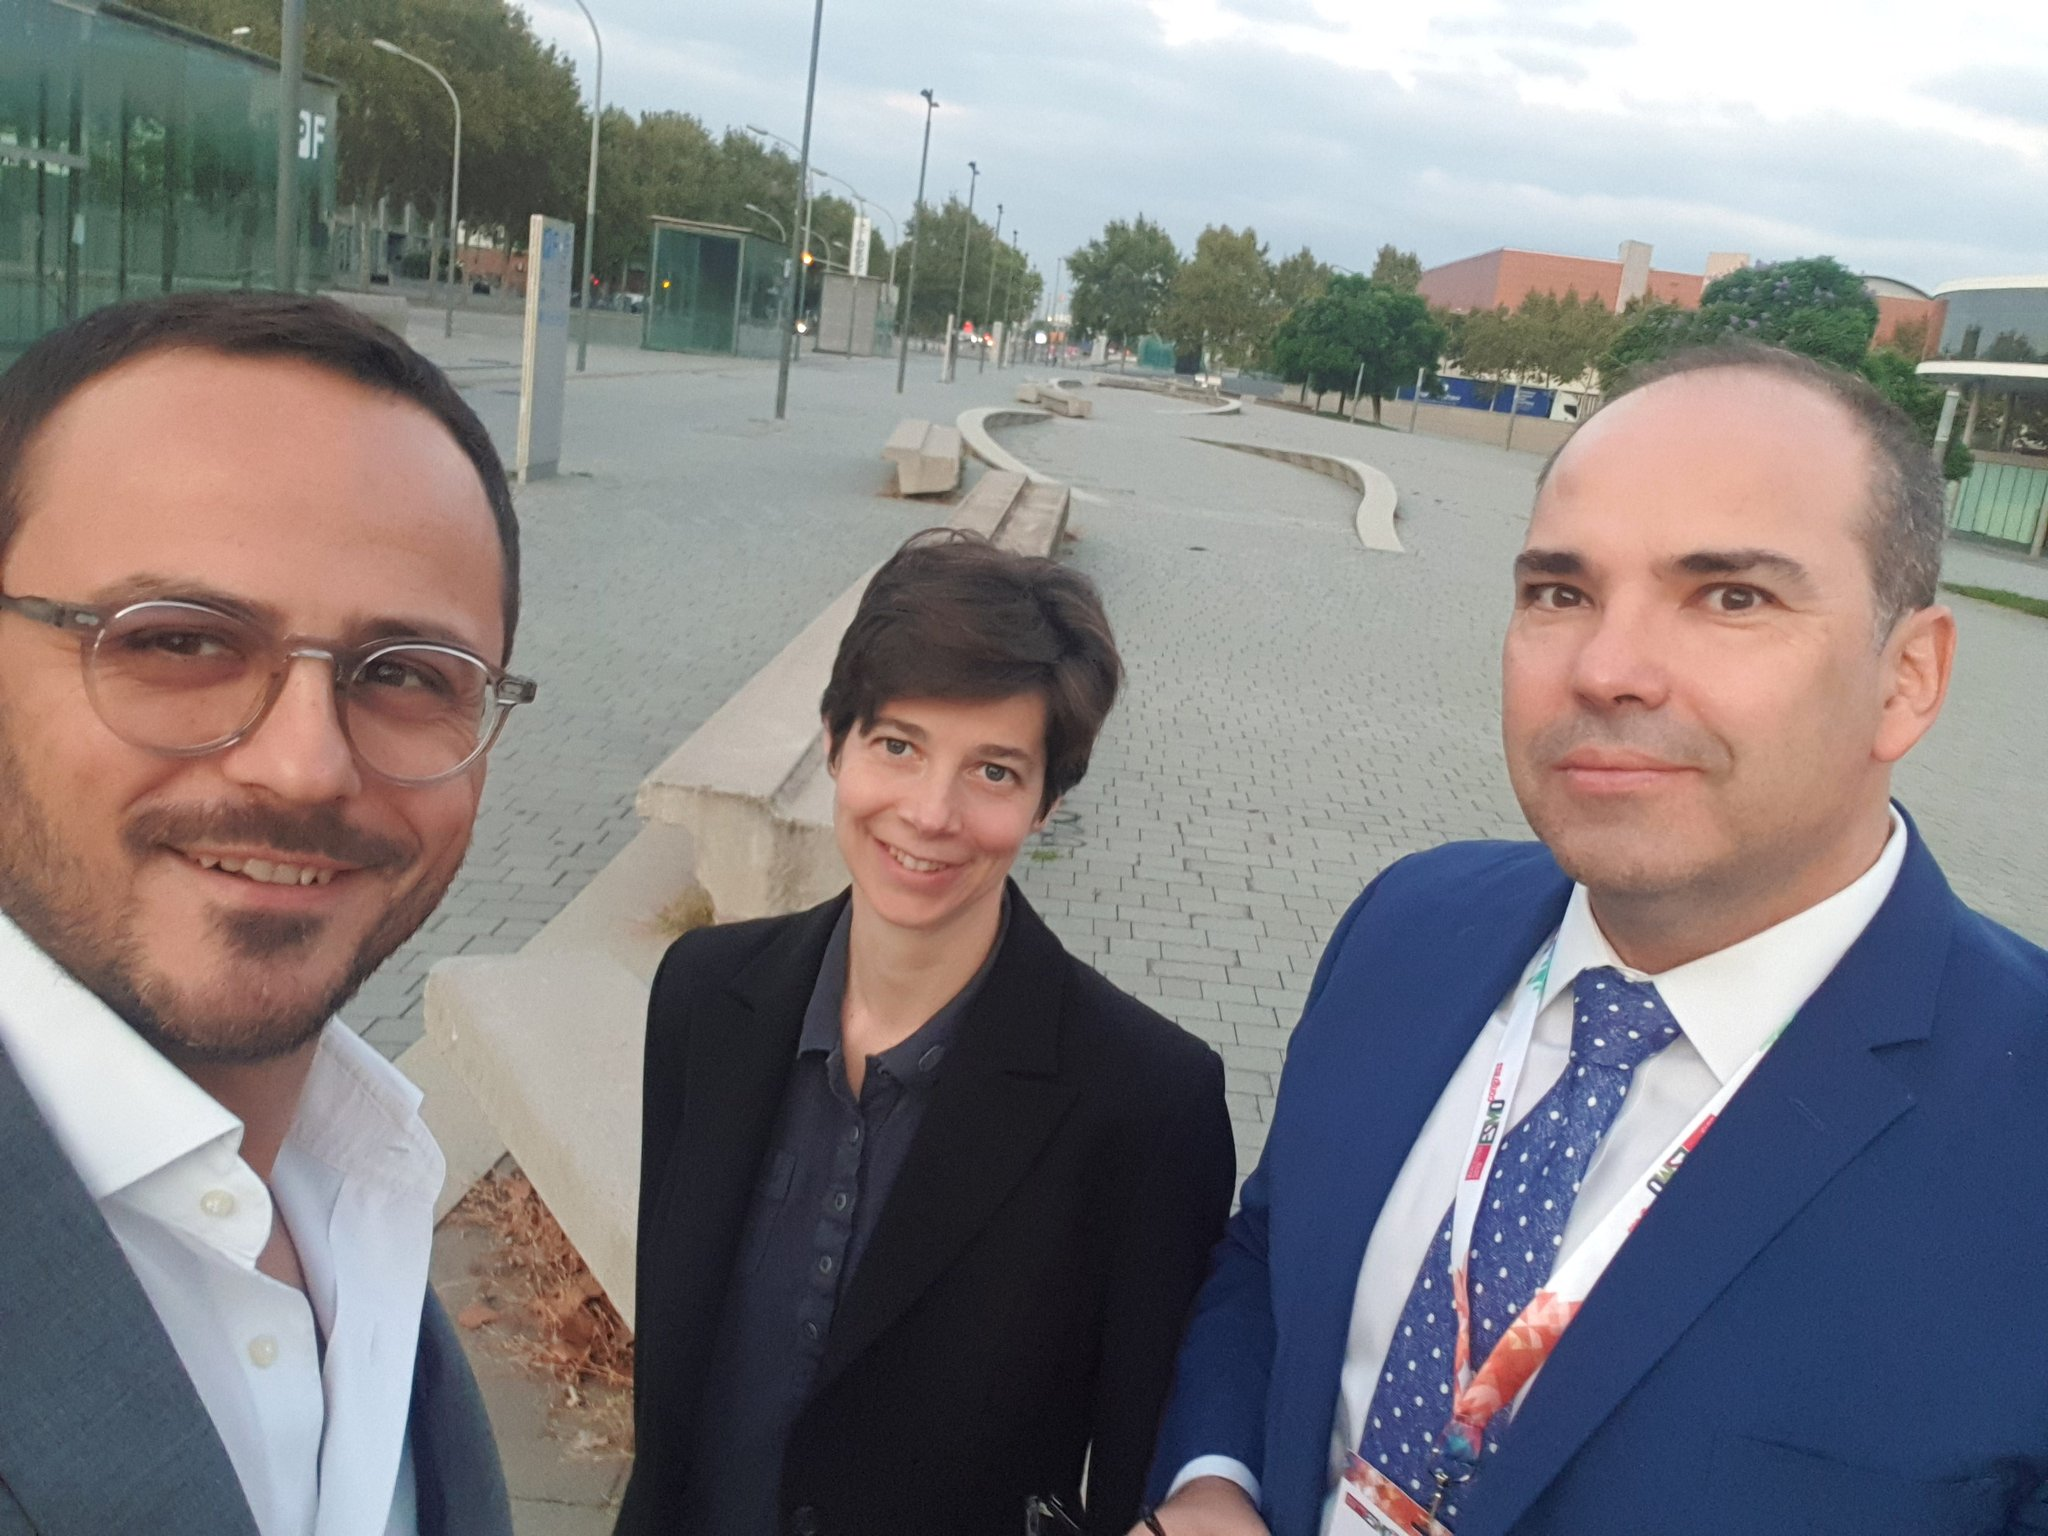 Meeting CROH Editors with Prof. Rolfo& Dr. Malapelle - Barcelona, October 2019